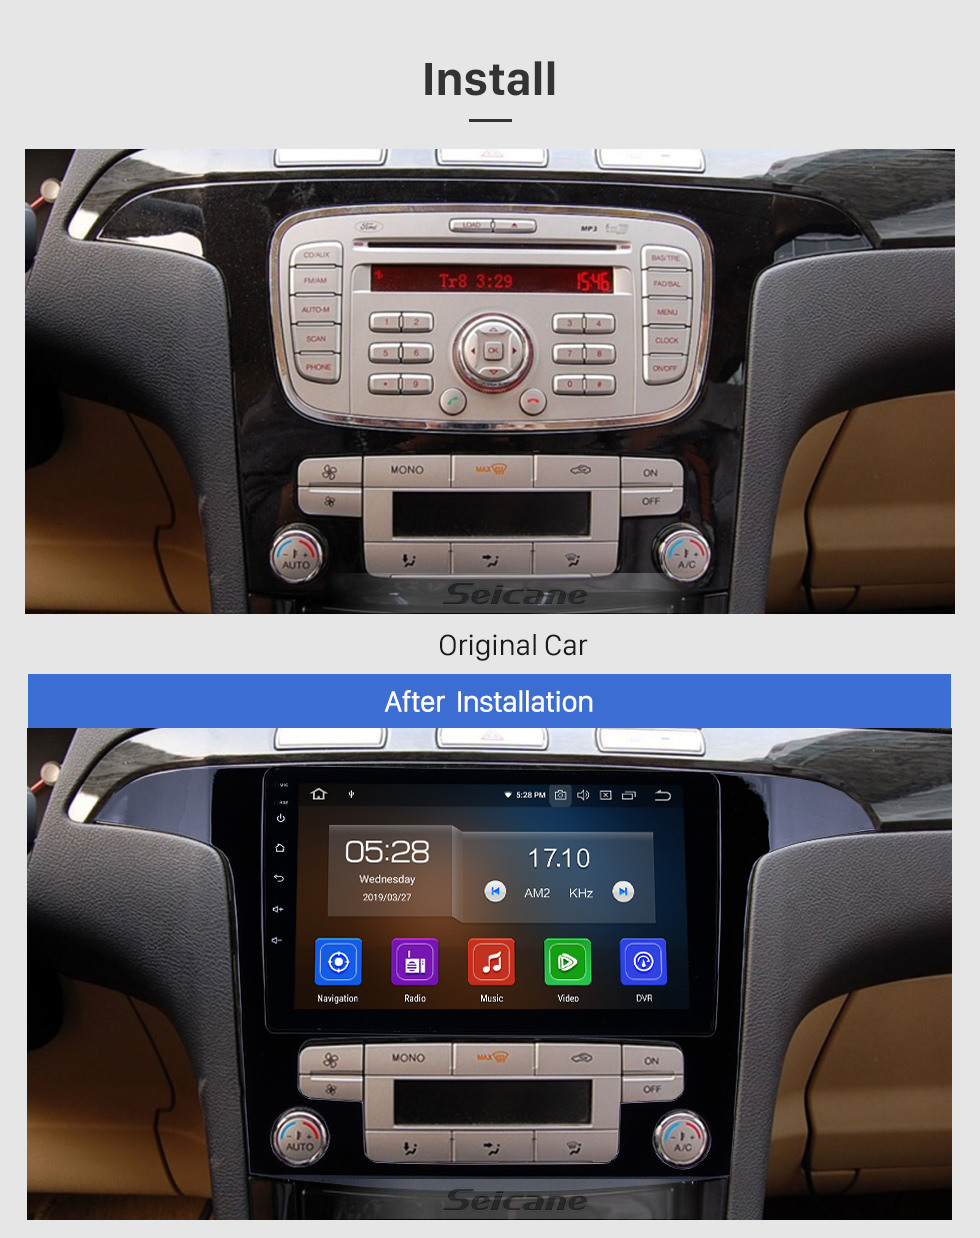 Seicane 9 inch Android 10.0 GPS Navigation Radio for 2007-2008 Ford S-Max Auto A/C with HD Touchscreen Carplay AUX Bluetooth support TPMS